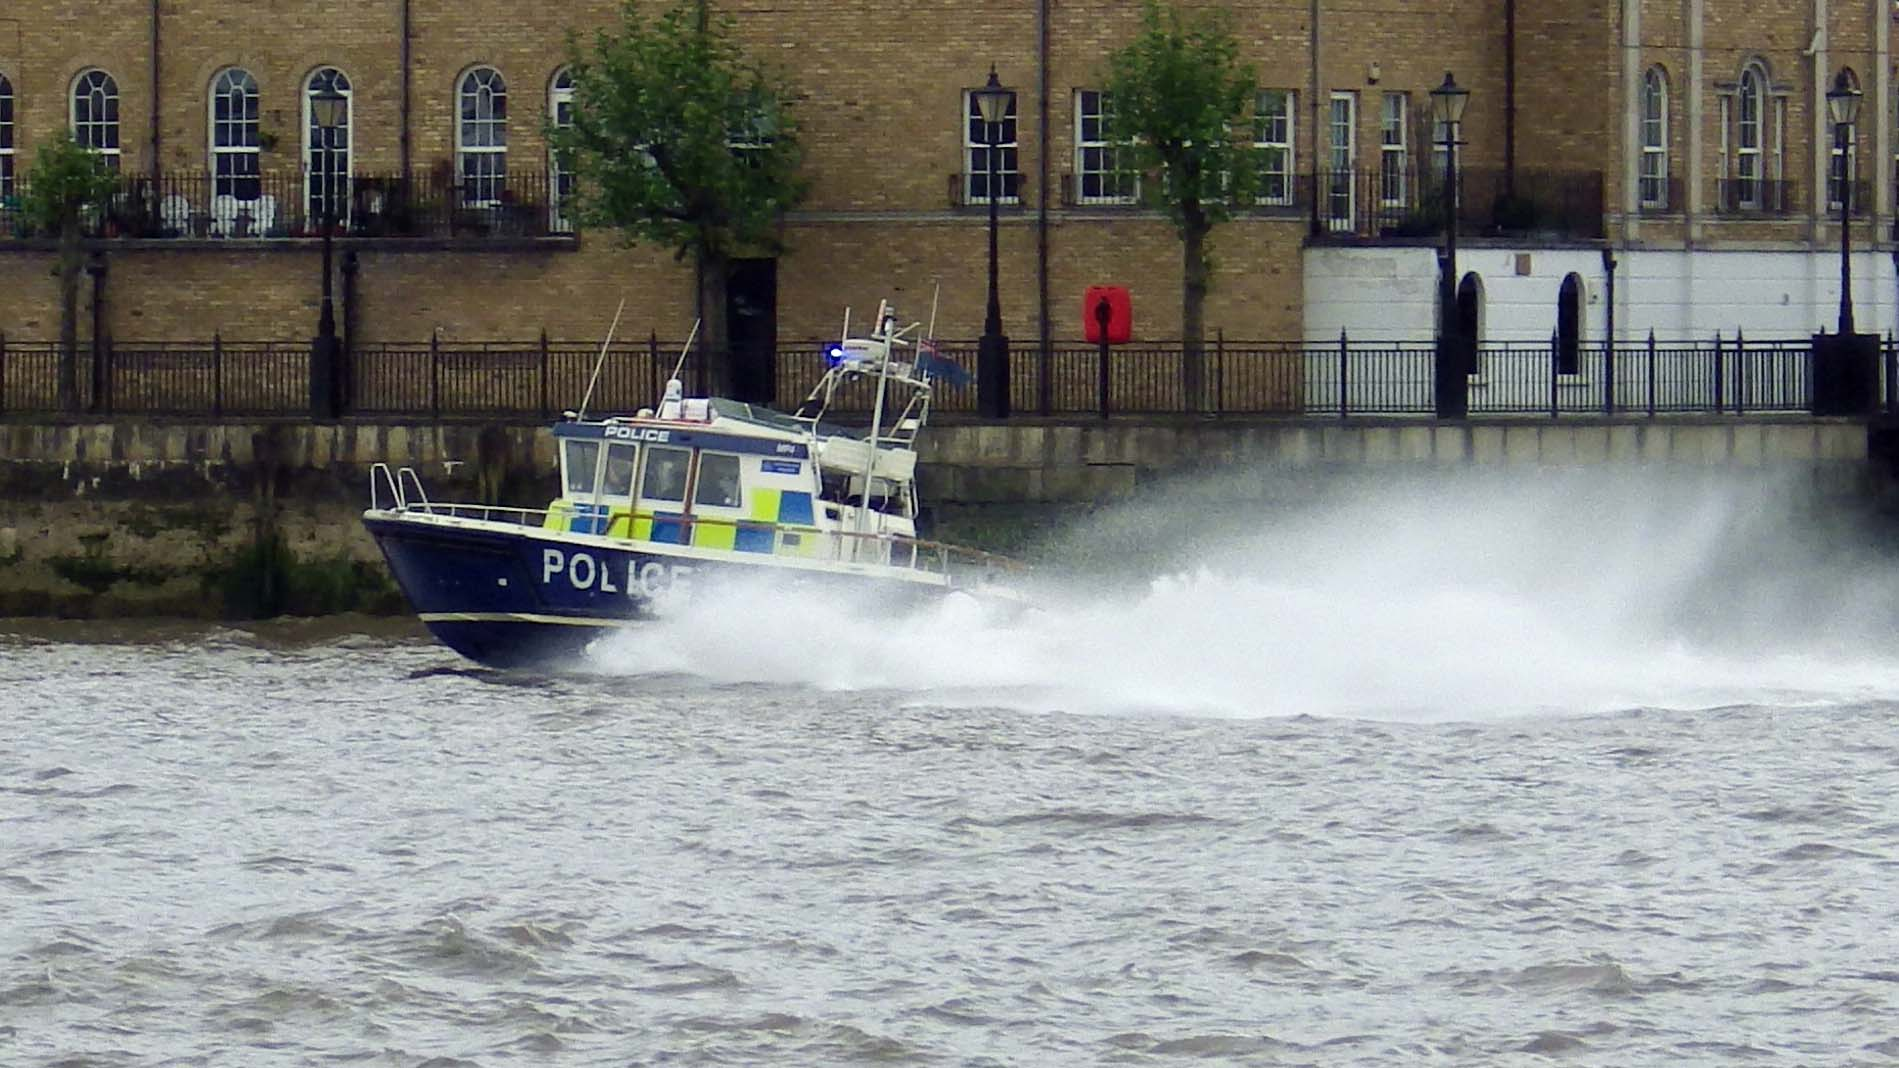 Police Launch on Thames